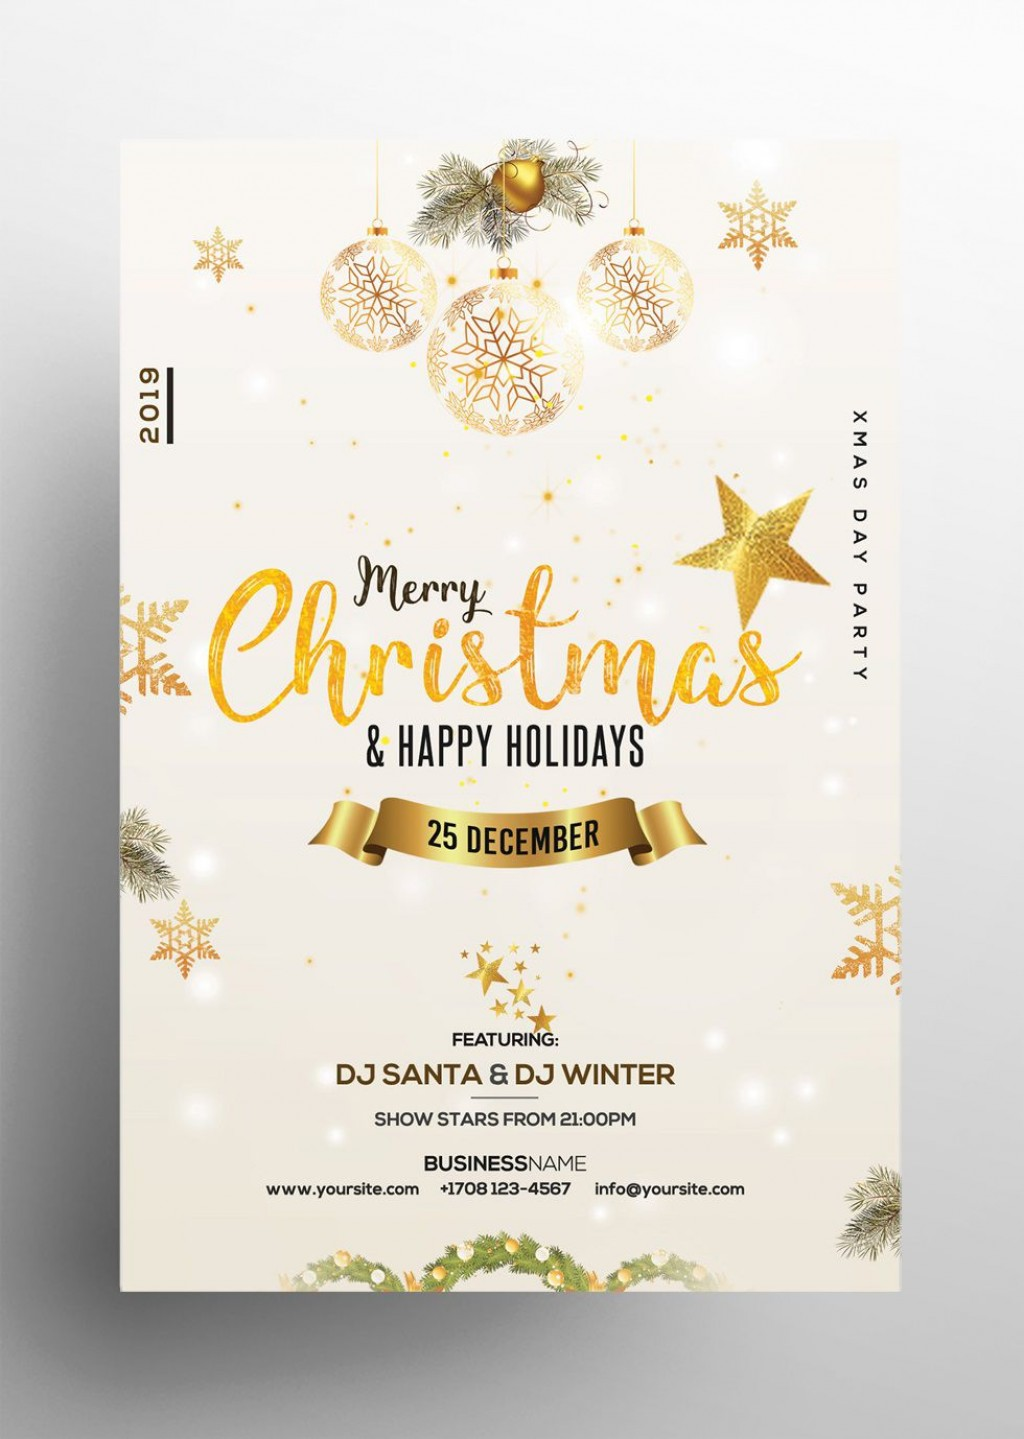 005 Dreaded Free Holiday Flyer Template Image  Printable Christma Word Sale PartyLarge